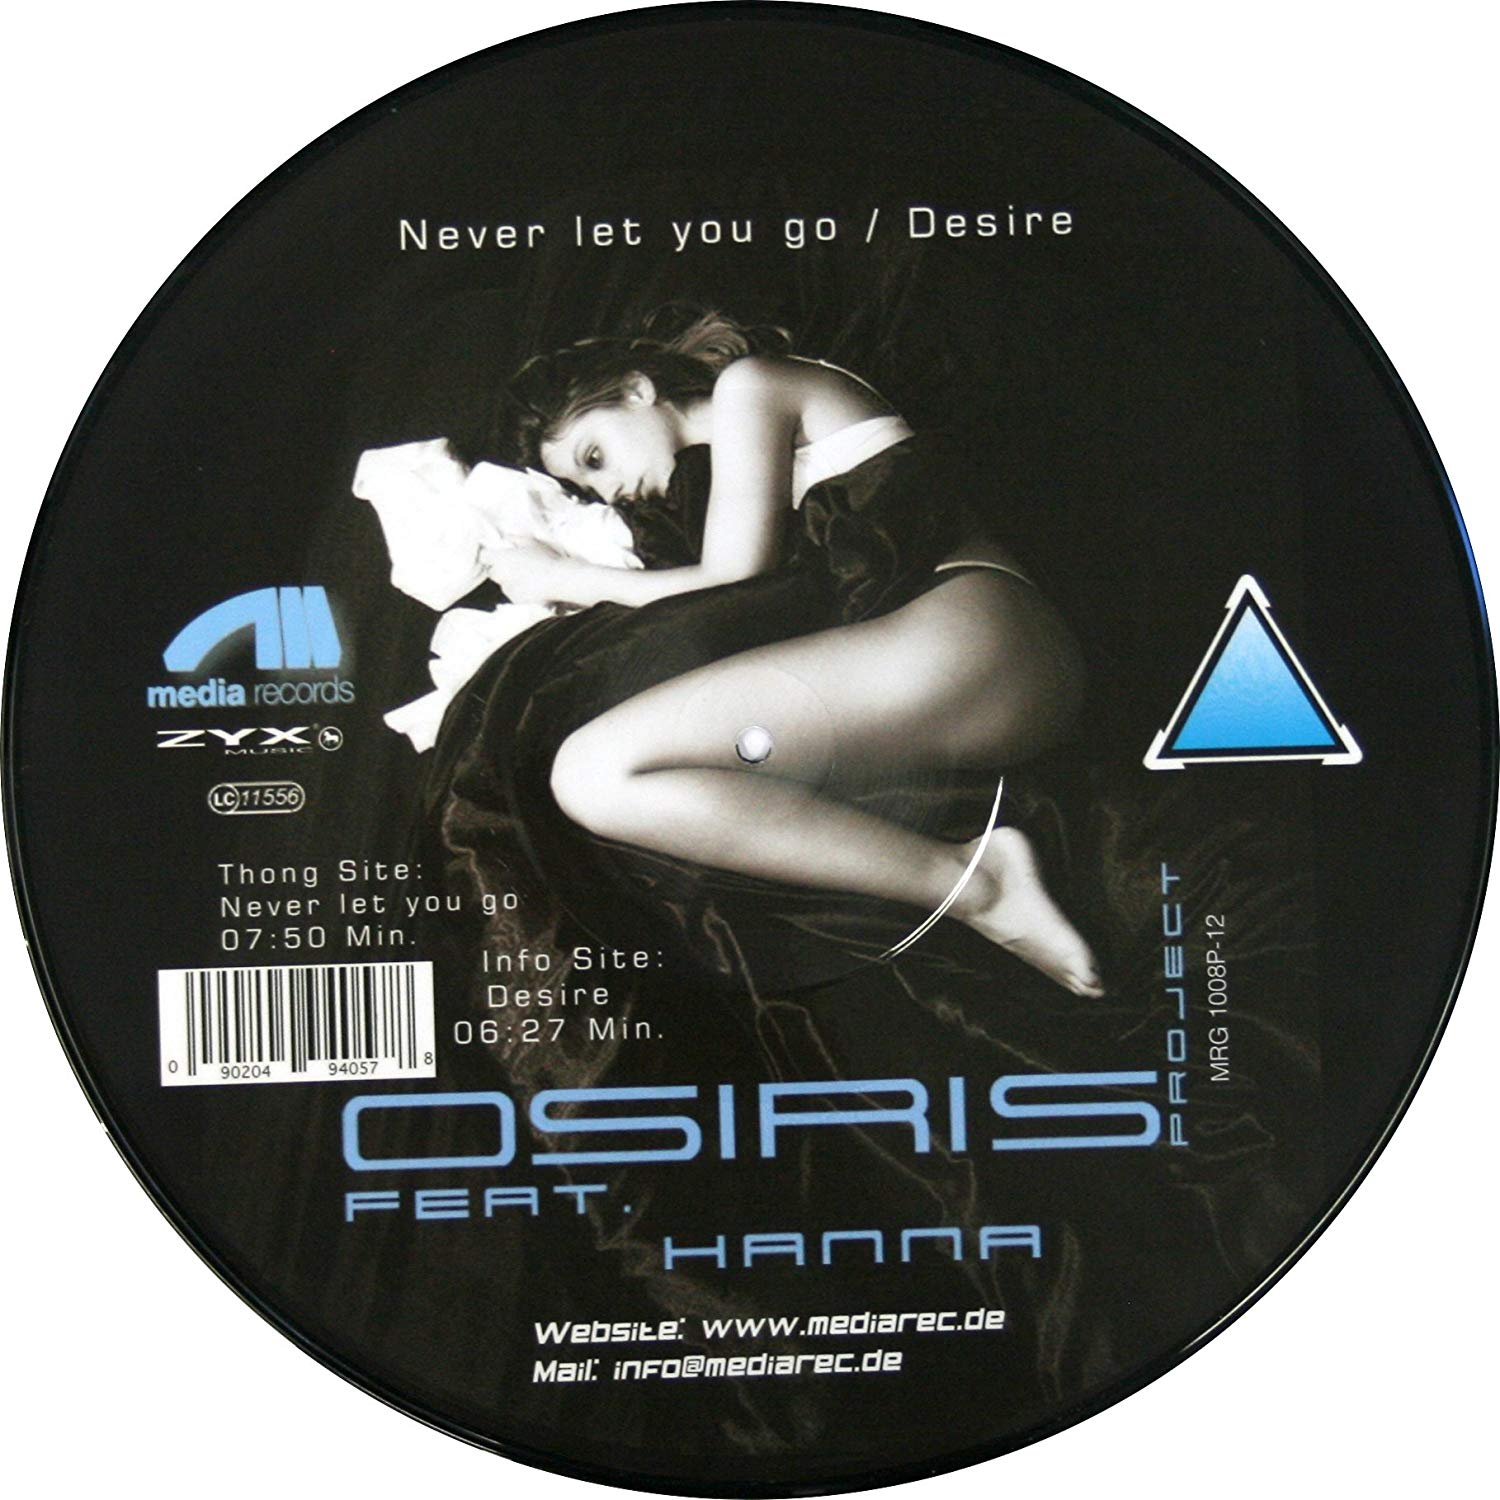 Osiris-Project, Hanna. Never Let U Go, Desire (LP, Picture Disc)